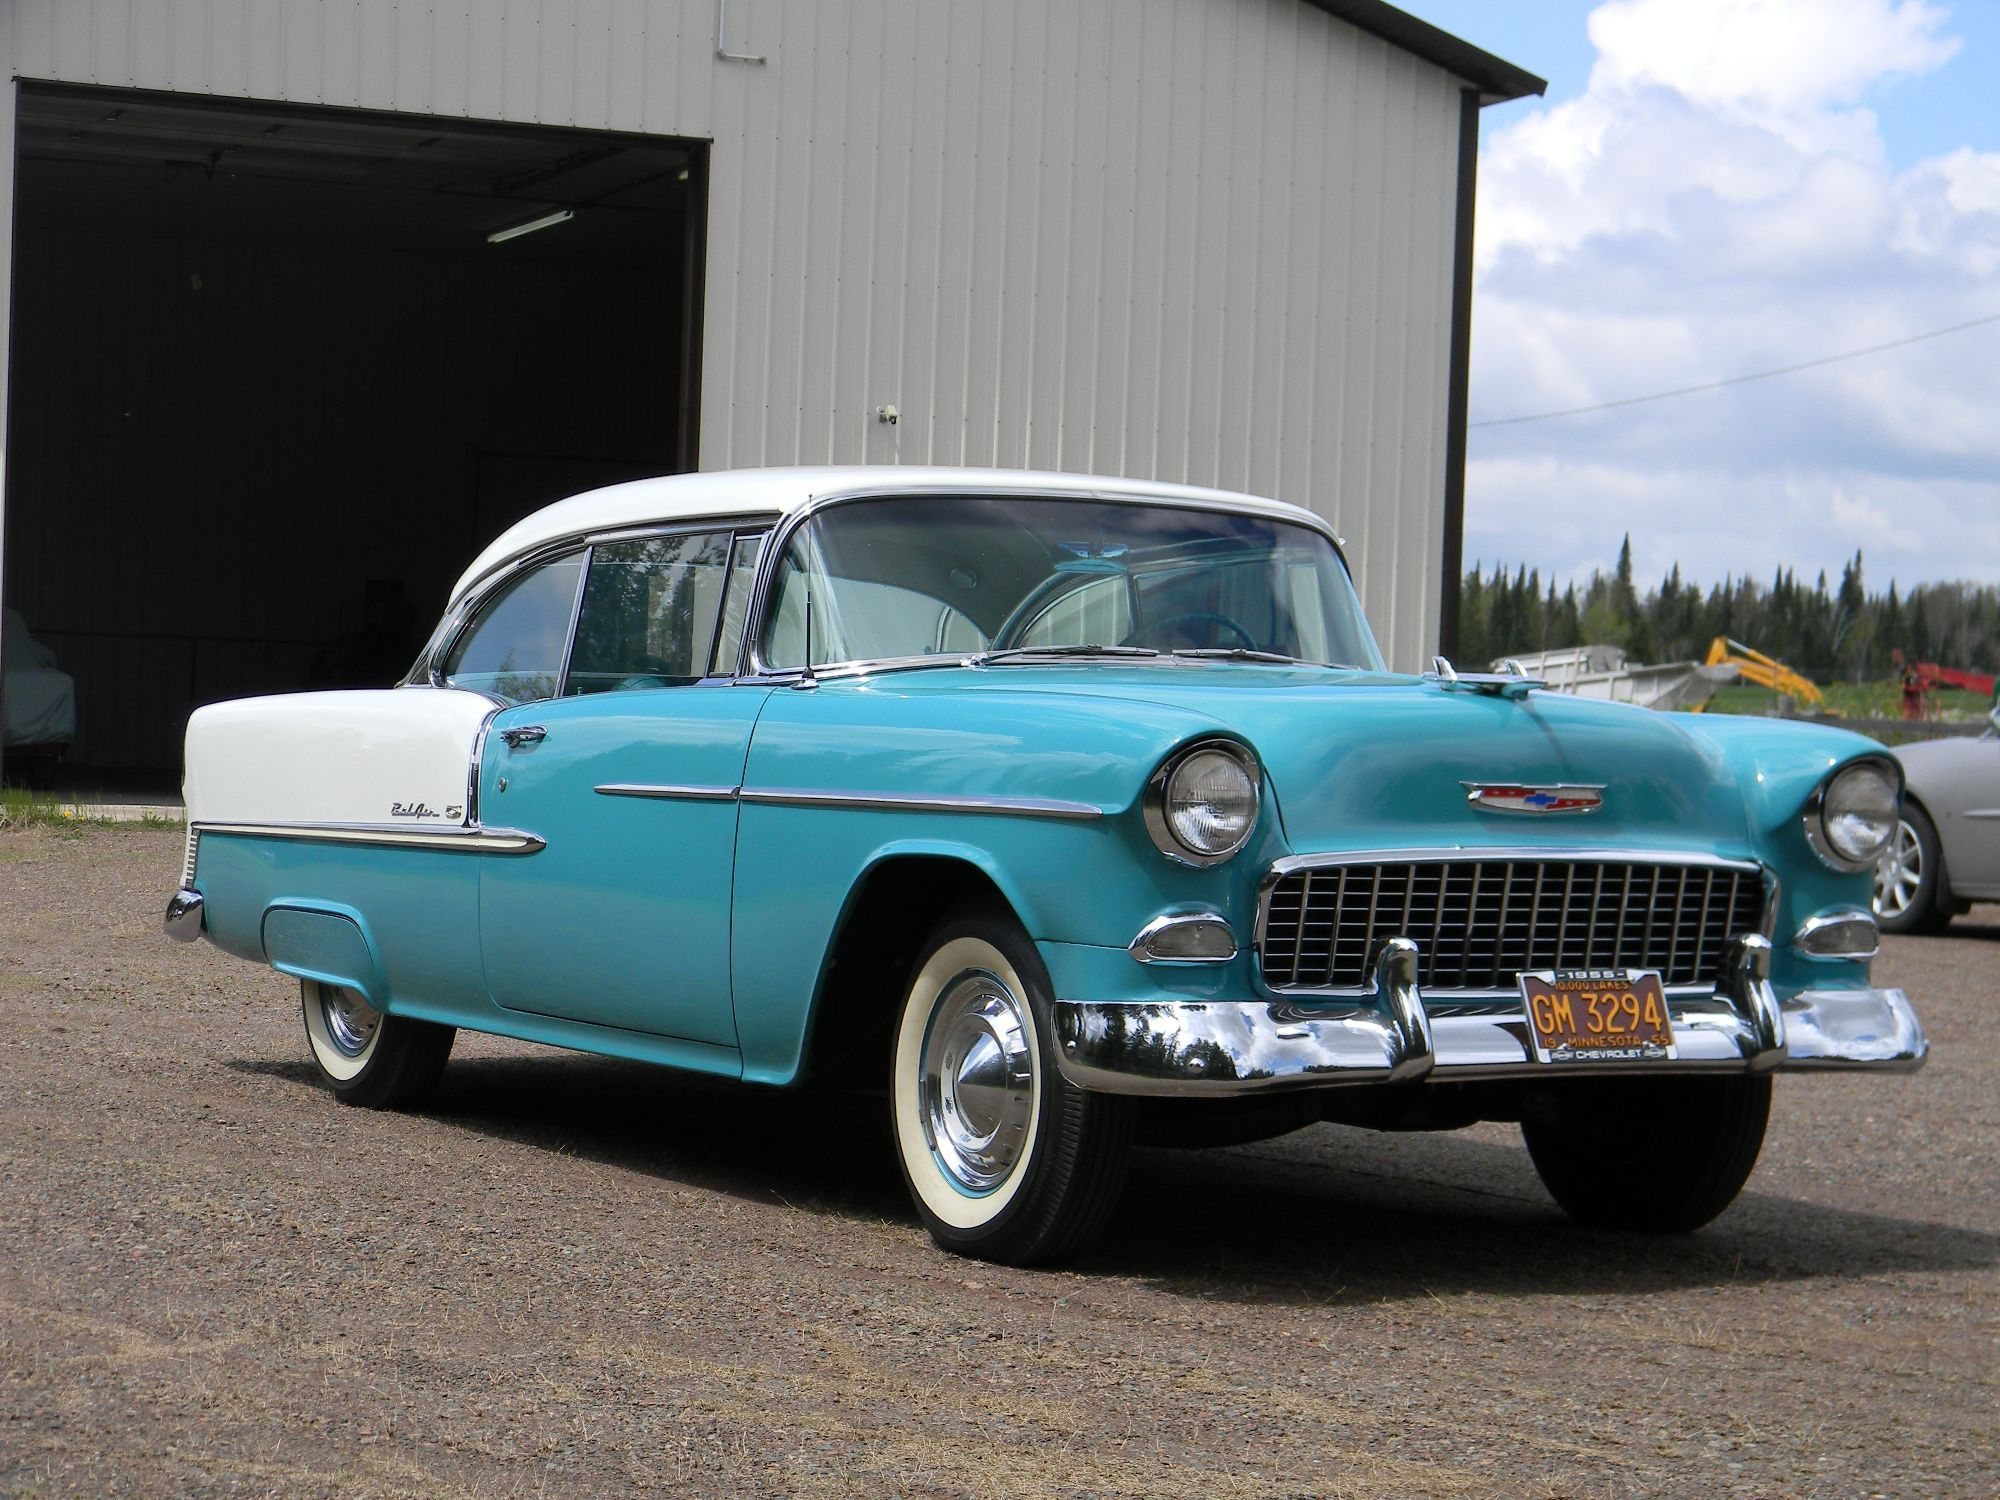 Is the 57 Chevrolet Bel Air better than the 55 and 56